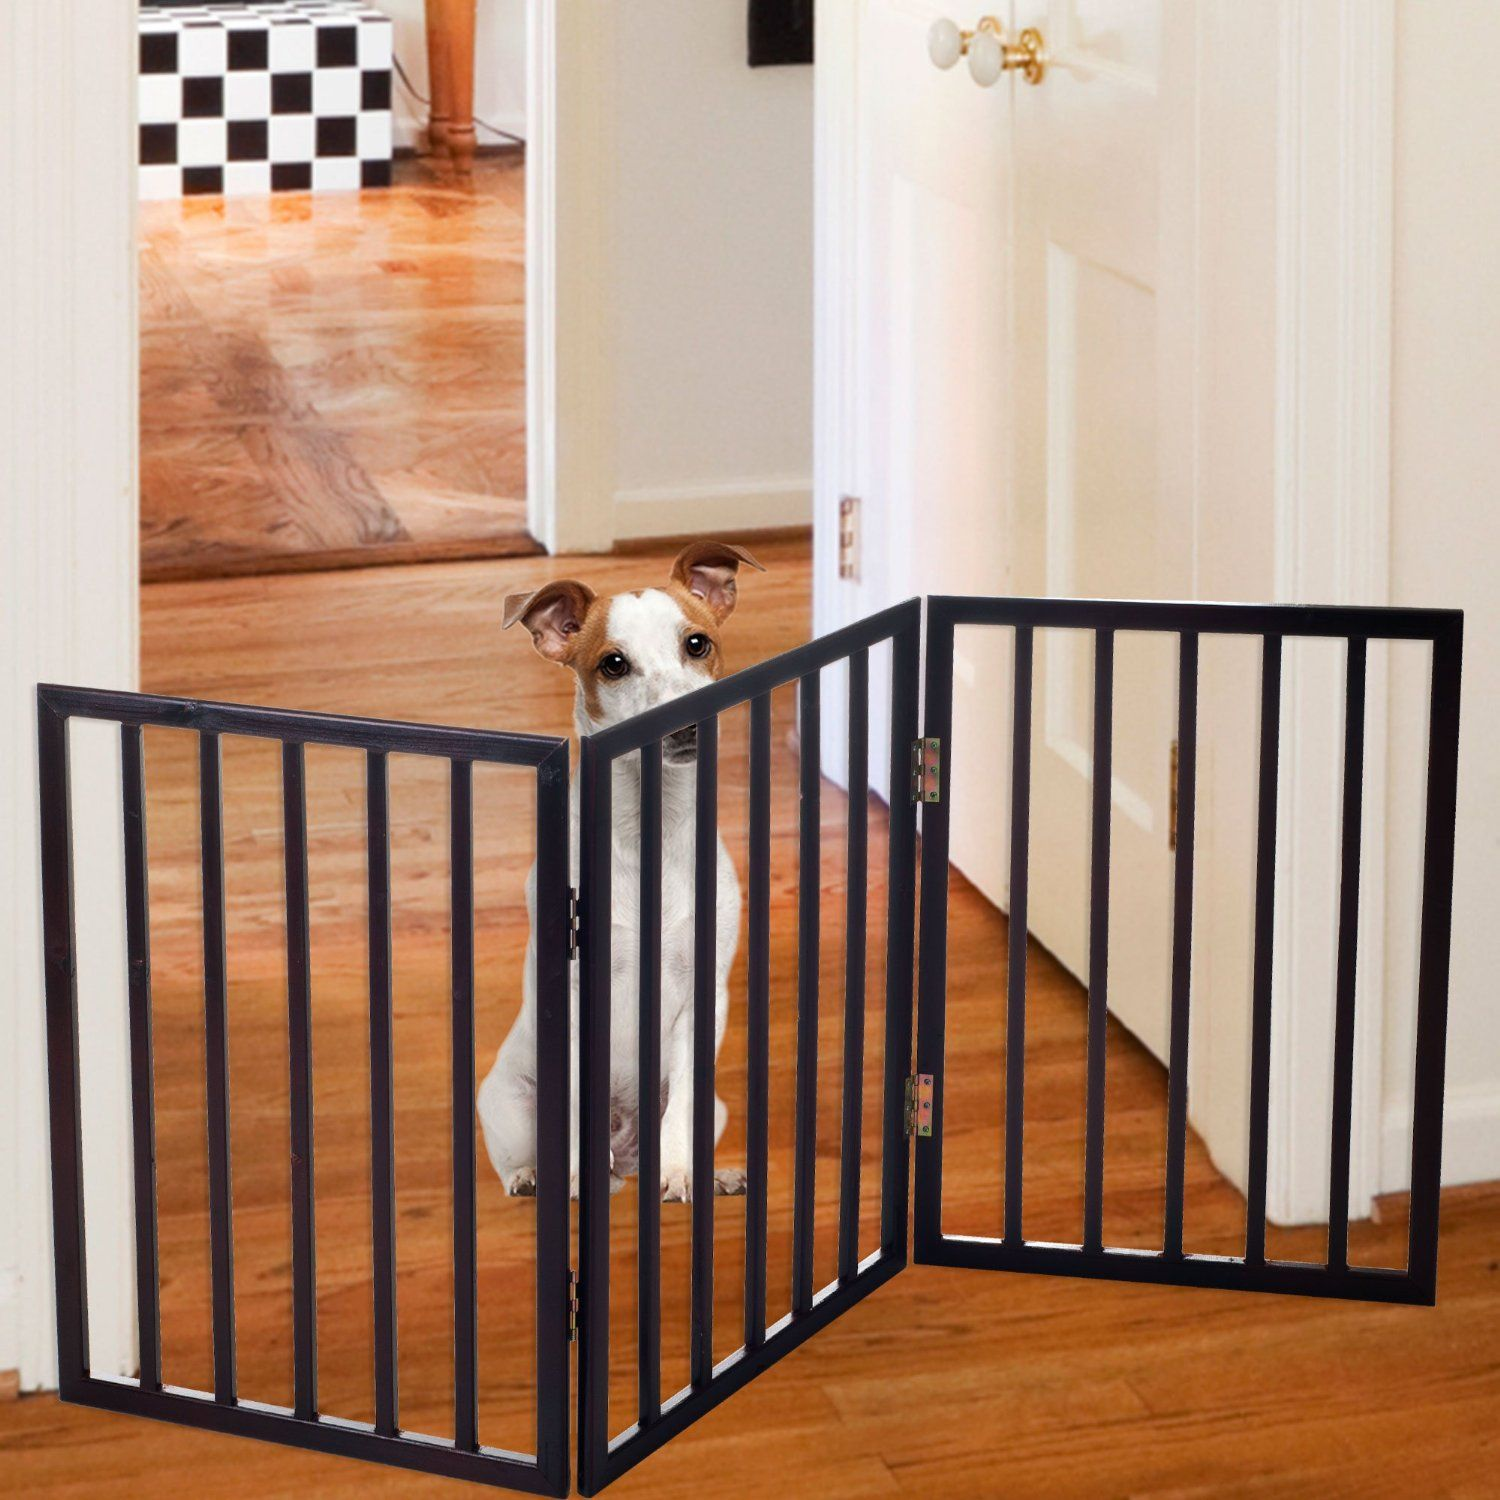 PETMAKER Easy Up Free Standing Folding Gate    Tried It! Love It! Click